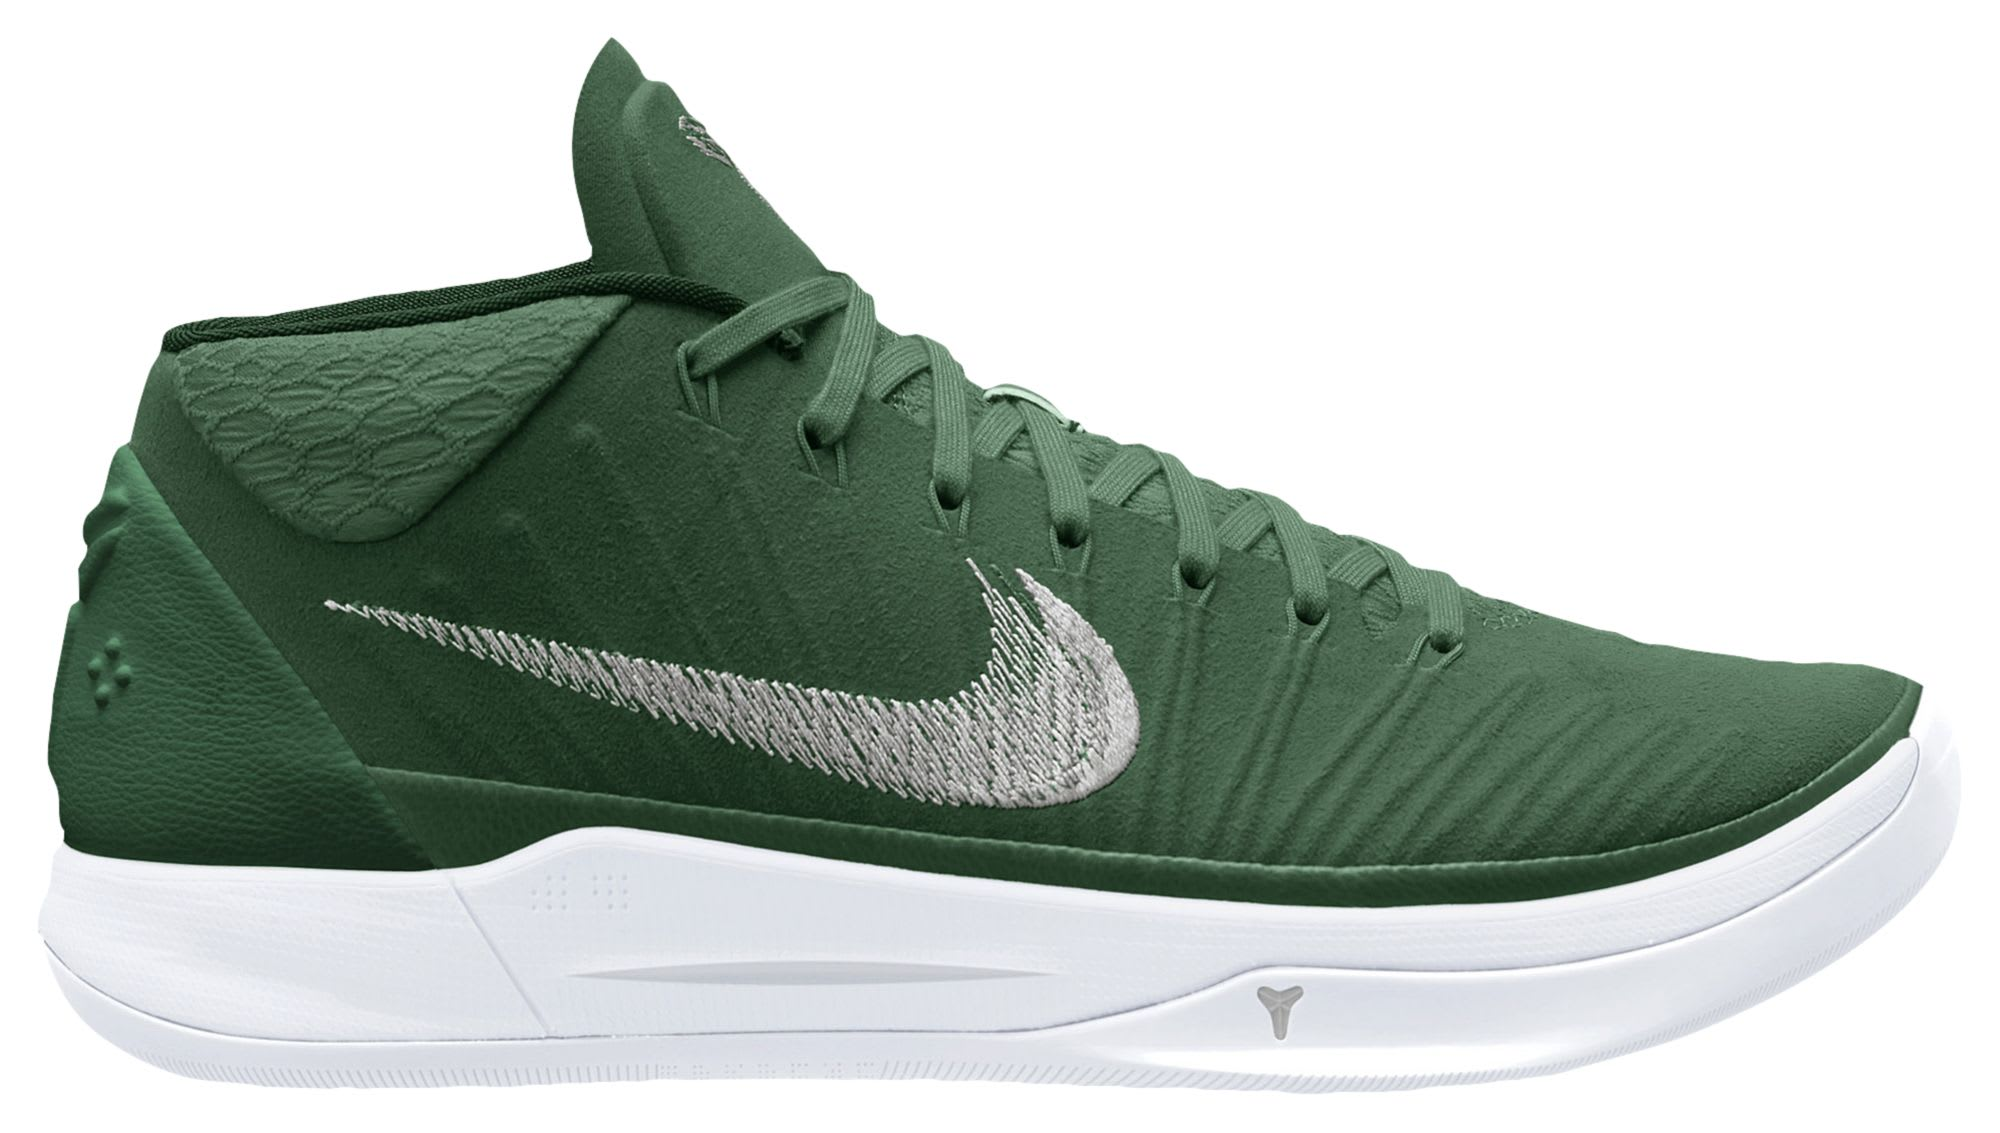 official photos ce05d 453b3 nike kobe ad mid green